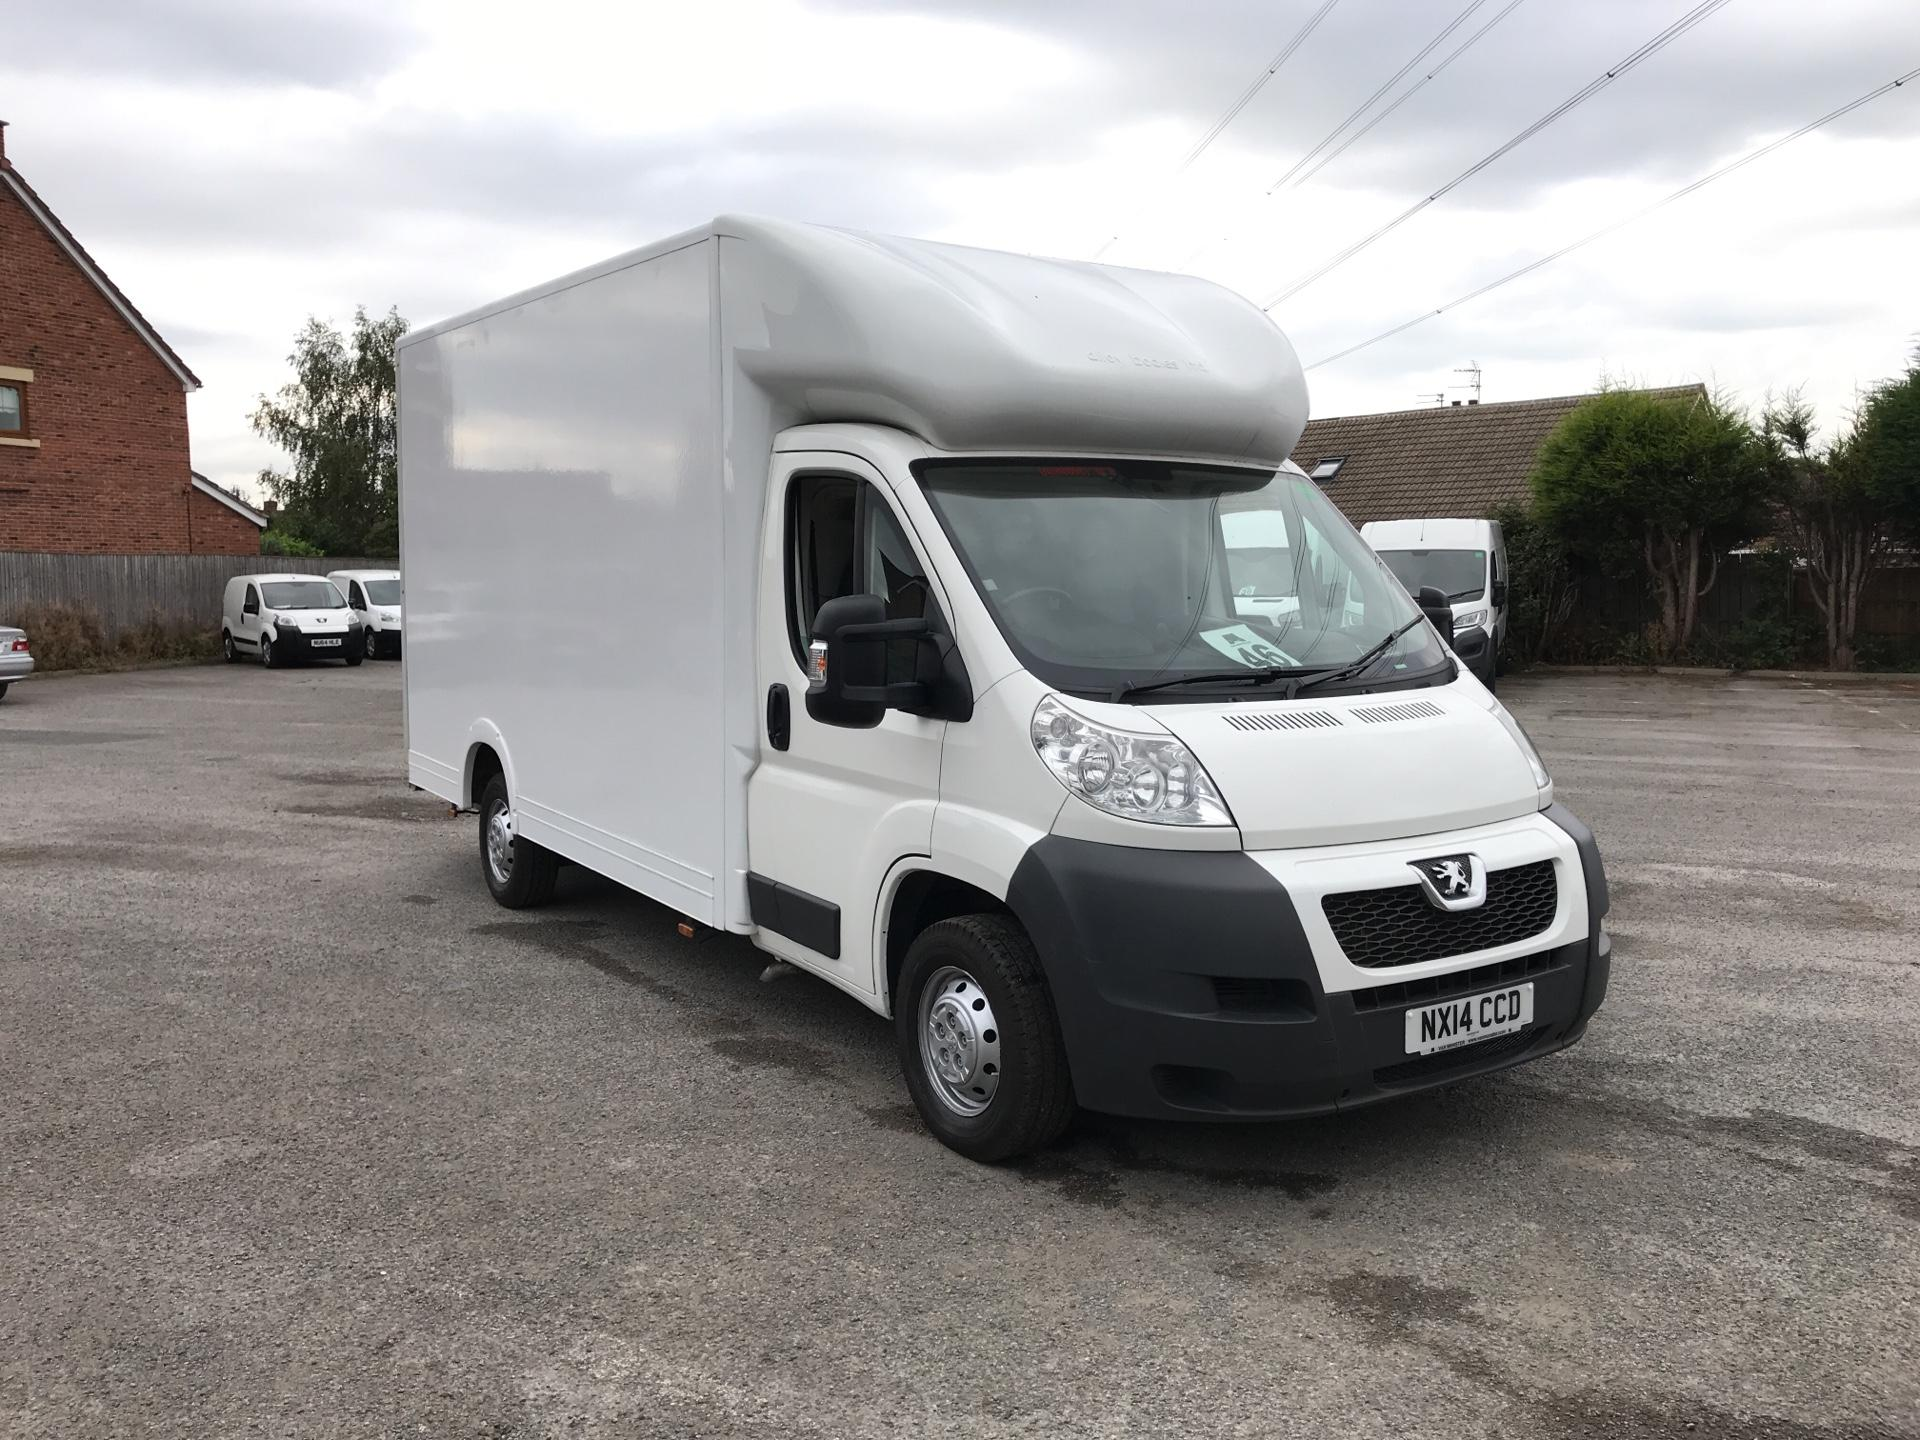 2014 Peugeot Boxer 2.2 Hdi Floor Cab 130Ps  Euro 5 (NX14CCD)